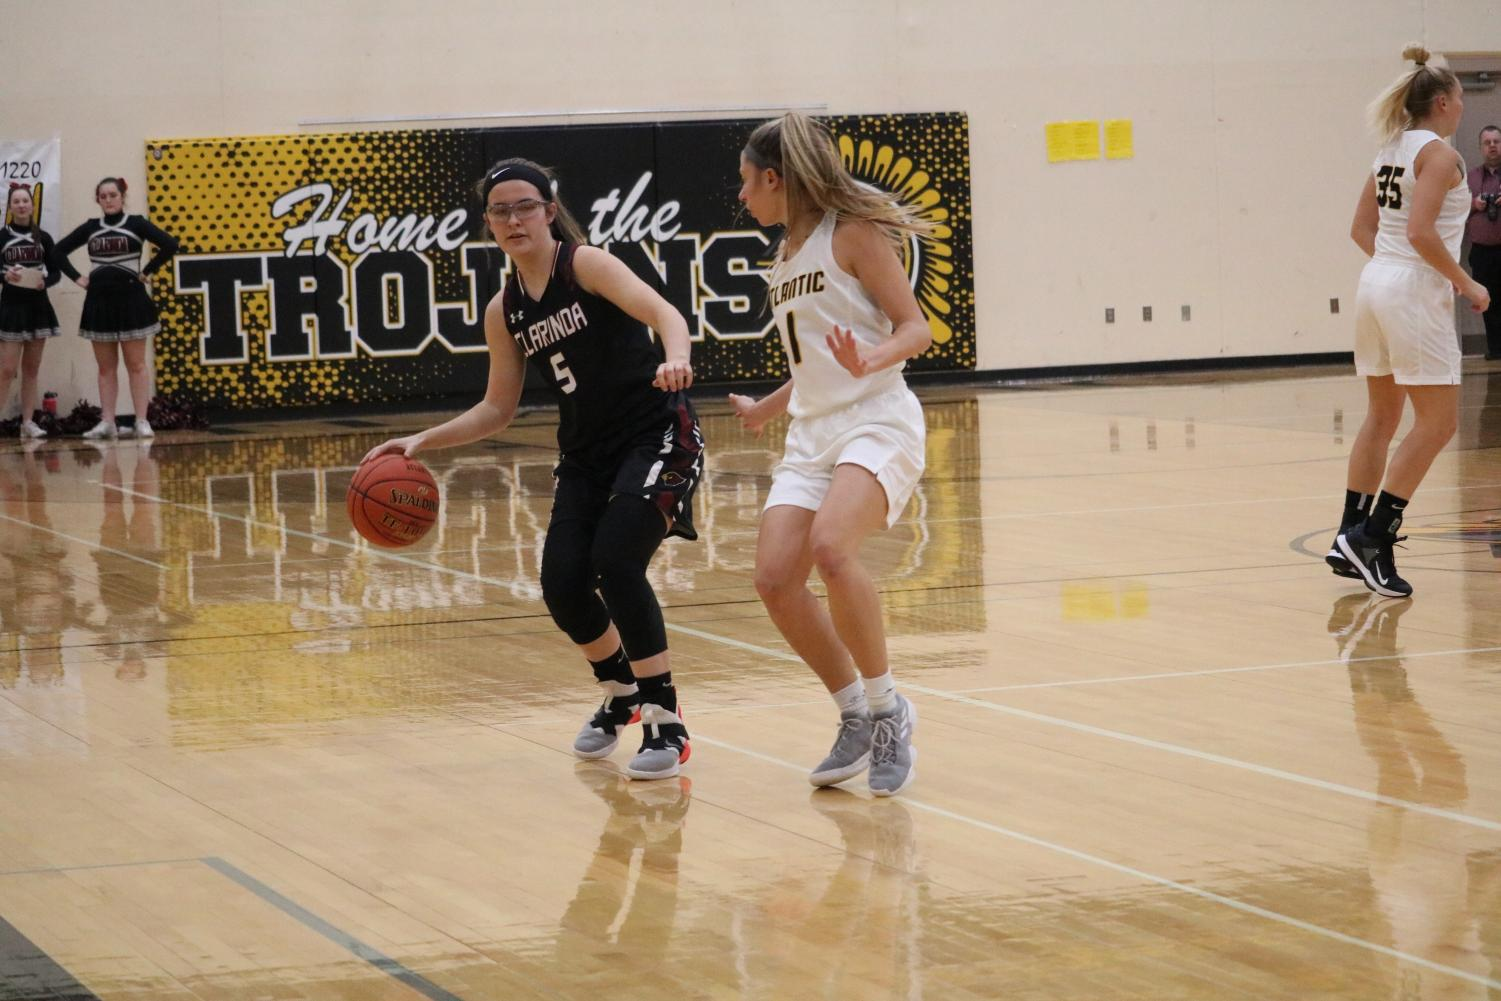 Junior Haley Rasmussen guards her girl in a game earlier this season. Rasmussen has played varsity basketball since her freshman year.